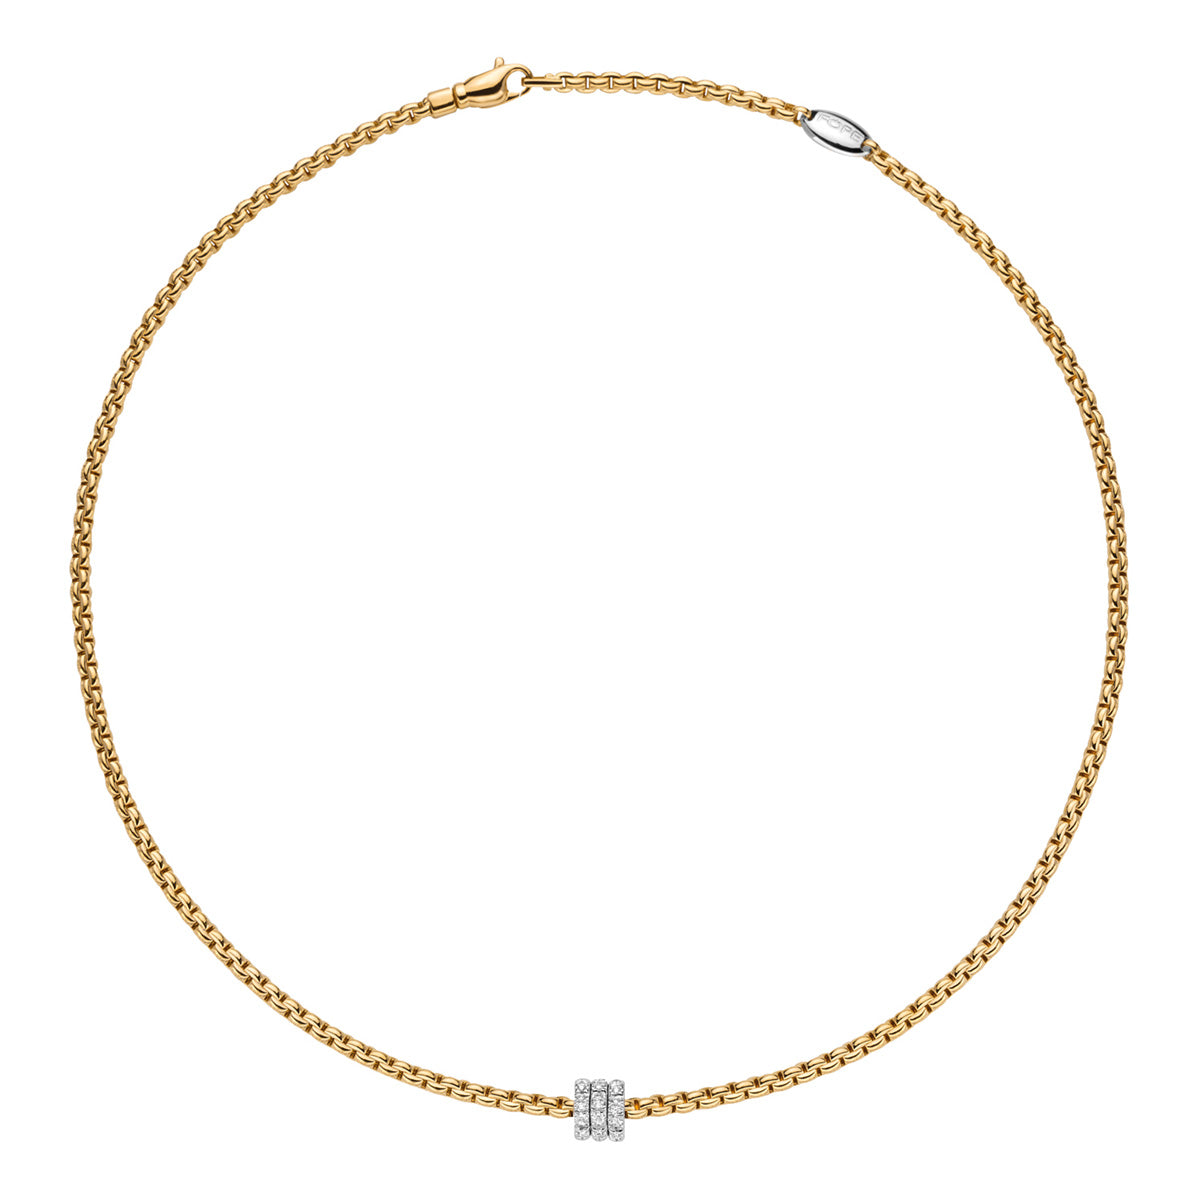 FOPE Flex'it Necklet with Diamond Set Pave Rondel in 18ct Yellow Gold - Hamilton & Inches